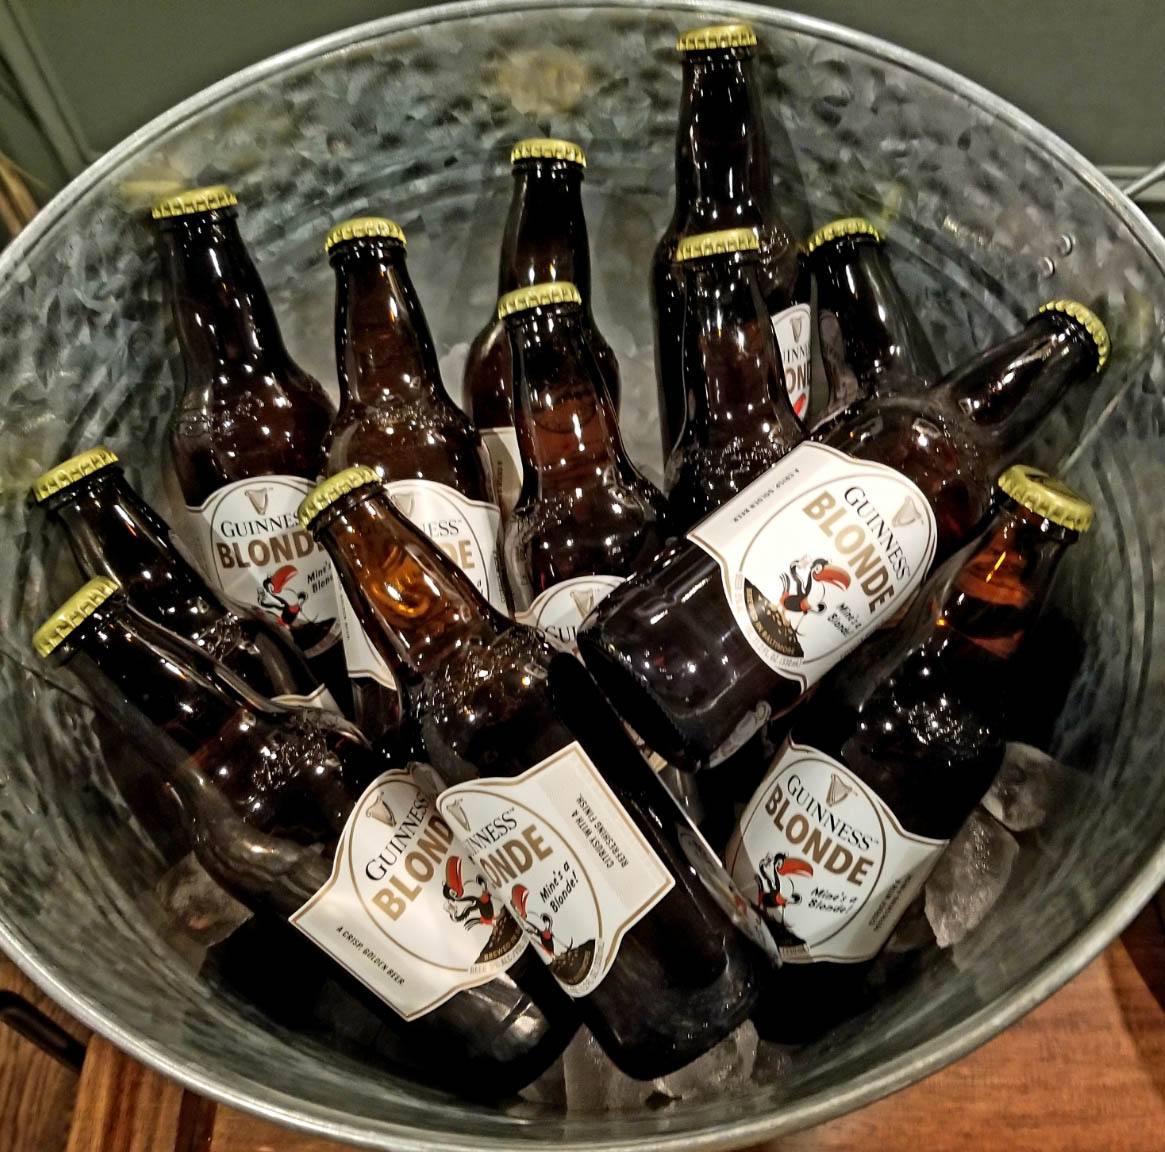 A Bucket of Beer always makes a good party